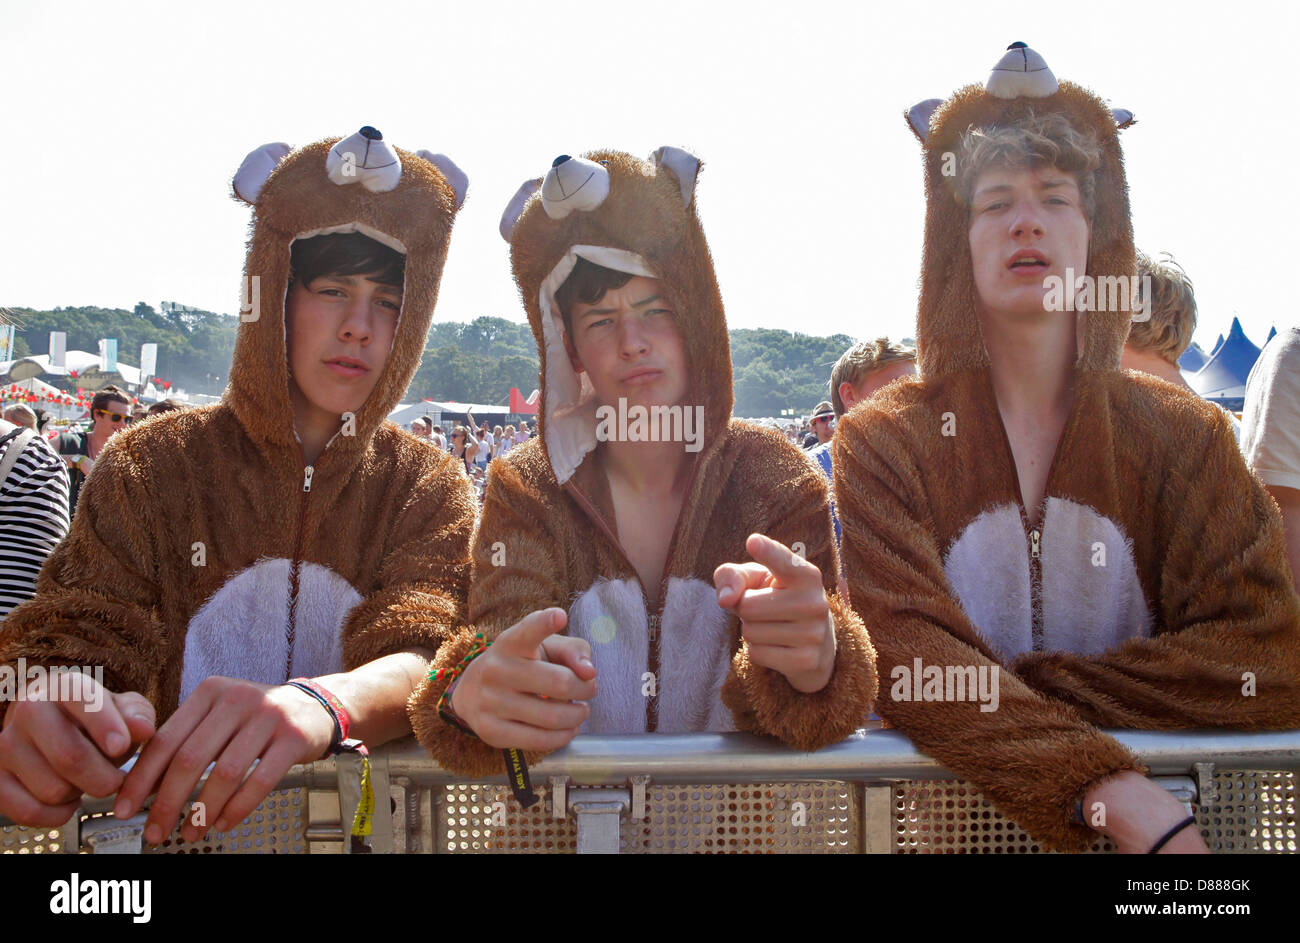 festival goers/ festivalgoers in animal onesie at the front line of main stage at bestival music festival, 2012 Stock Photo